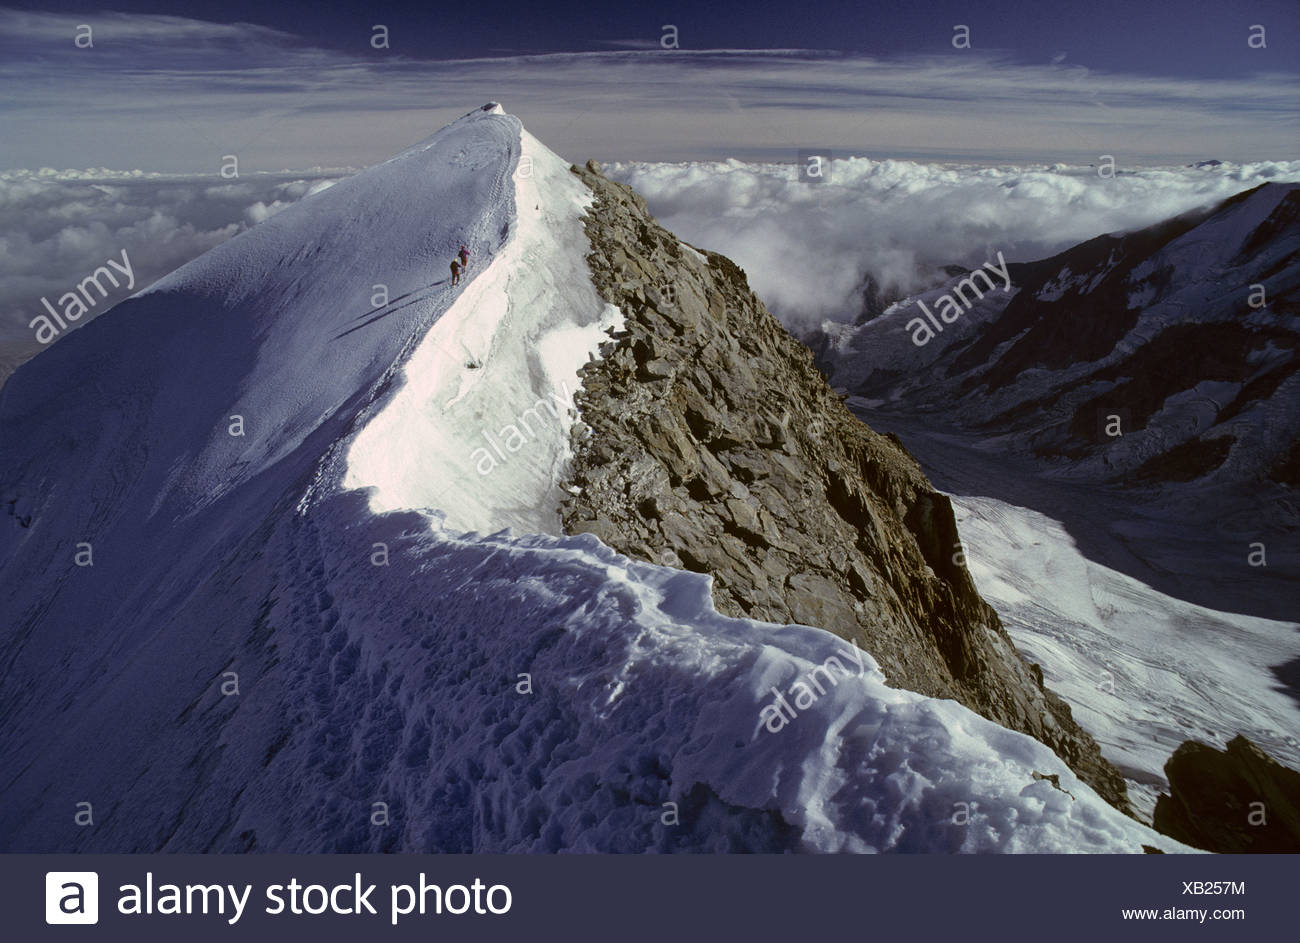 Two mountaineers just below the summit of Dome de Miage, Montblanc-Area, Chamonix, France - Stock Image